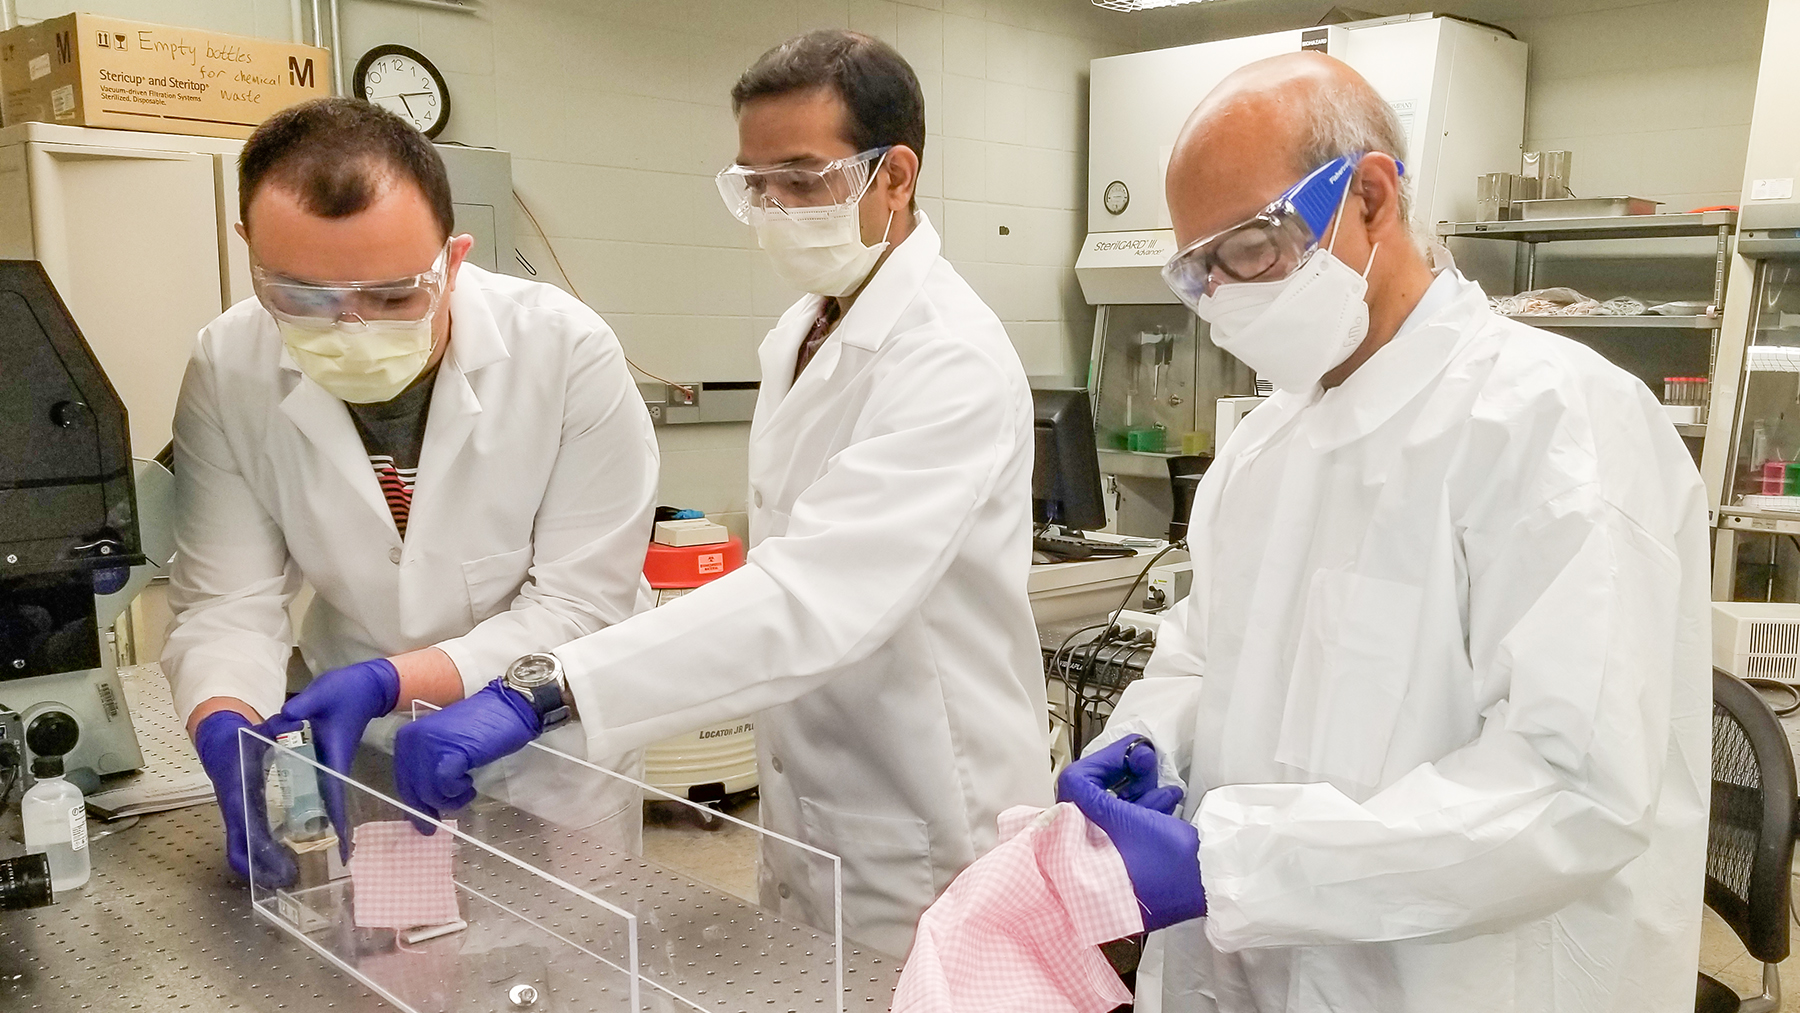 Mechanical science and engineering professor Taher Saif, right, and students Onur Aydin, left, and Bashar Emon test common household fabrics used to make face masks to help stop the spread of the coronavirus.